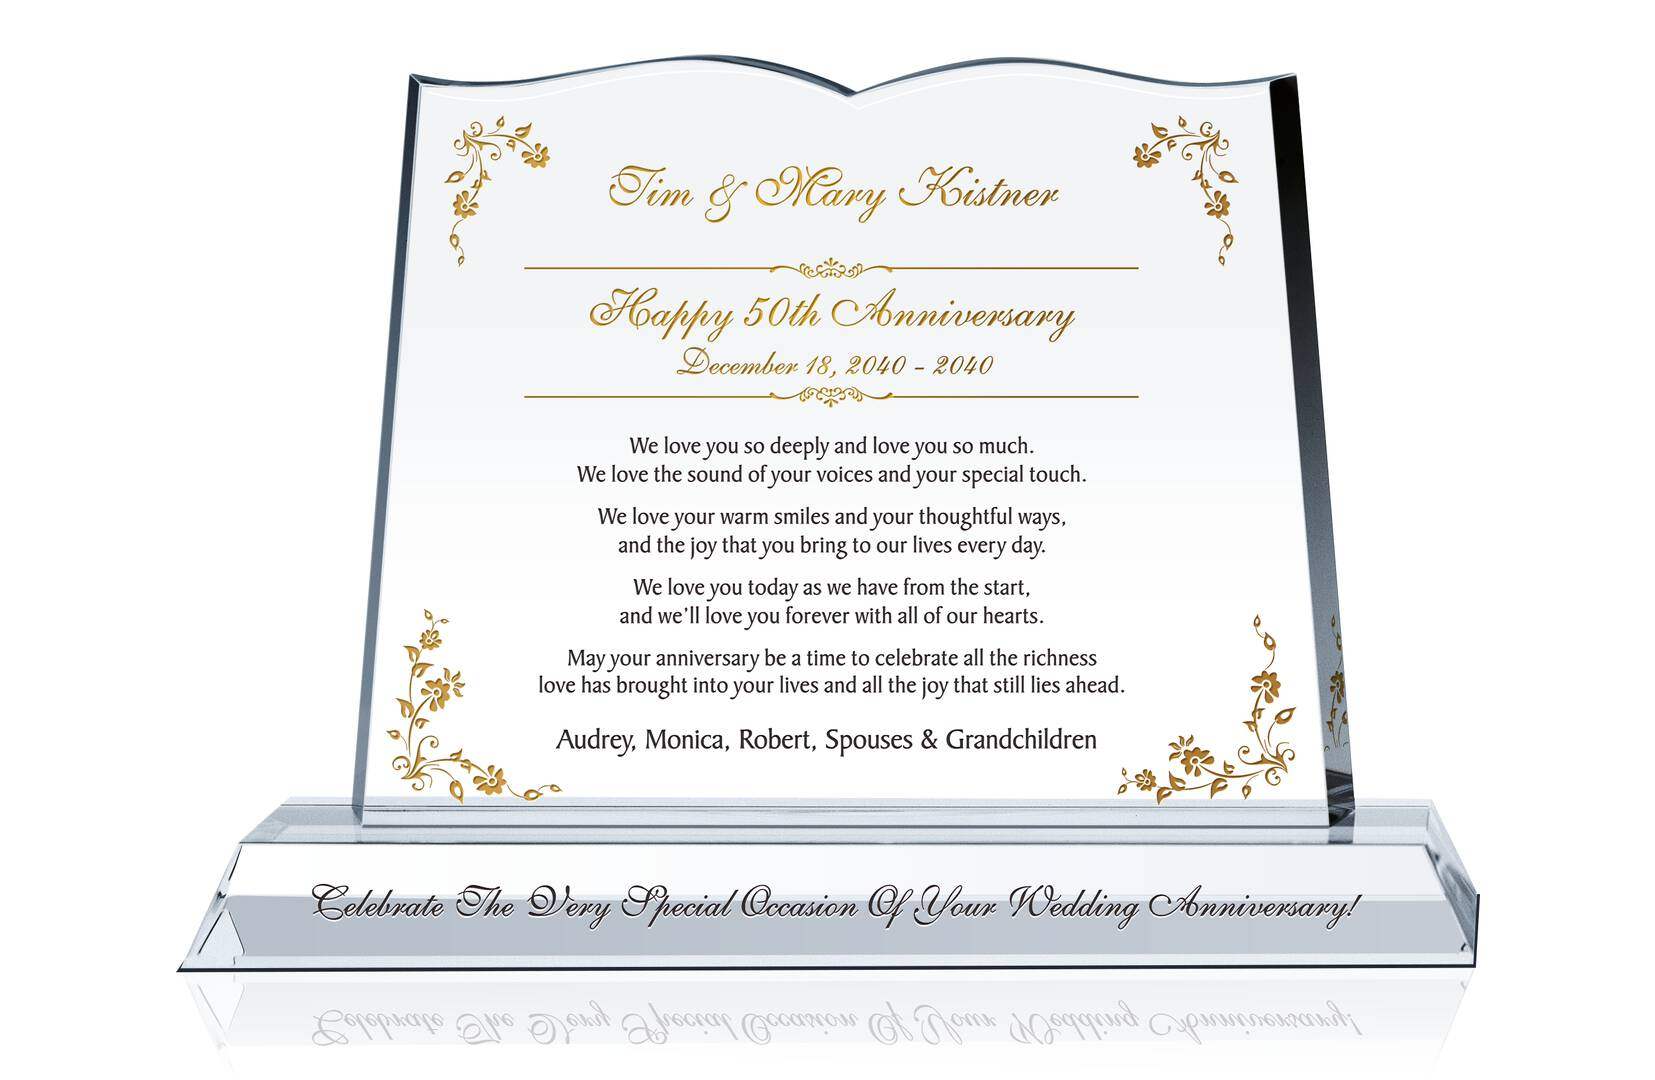 Gifts For Fiftieth Wedding Anniversary: 50th Wedding Anniversary Gift For Couple